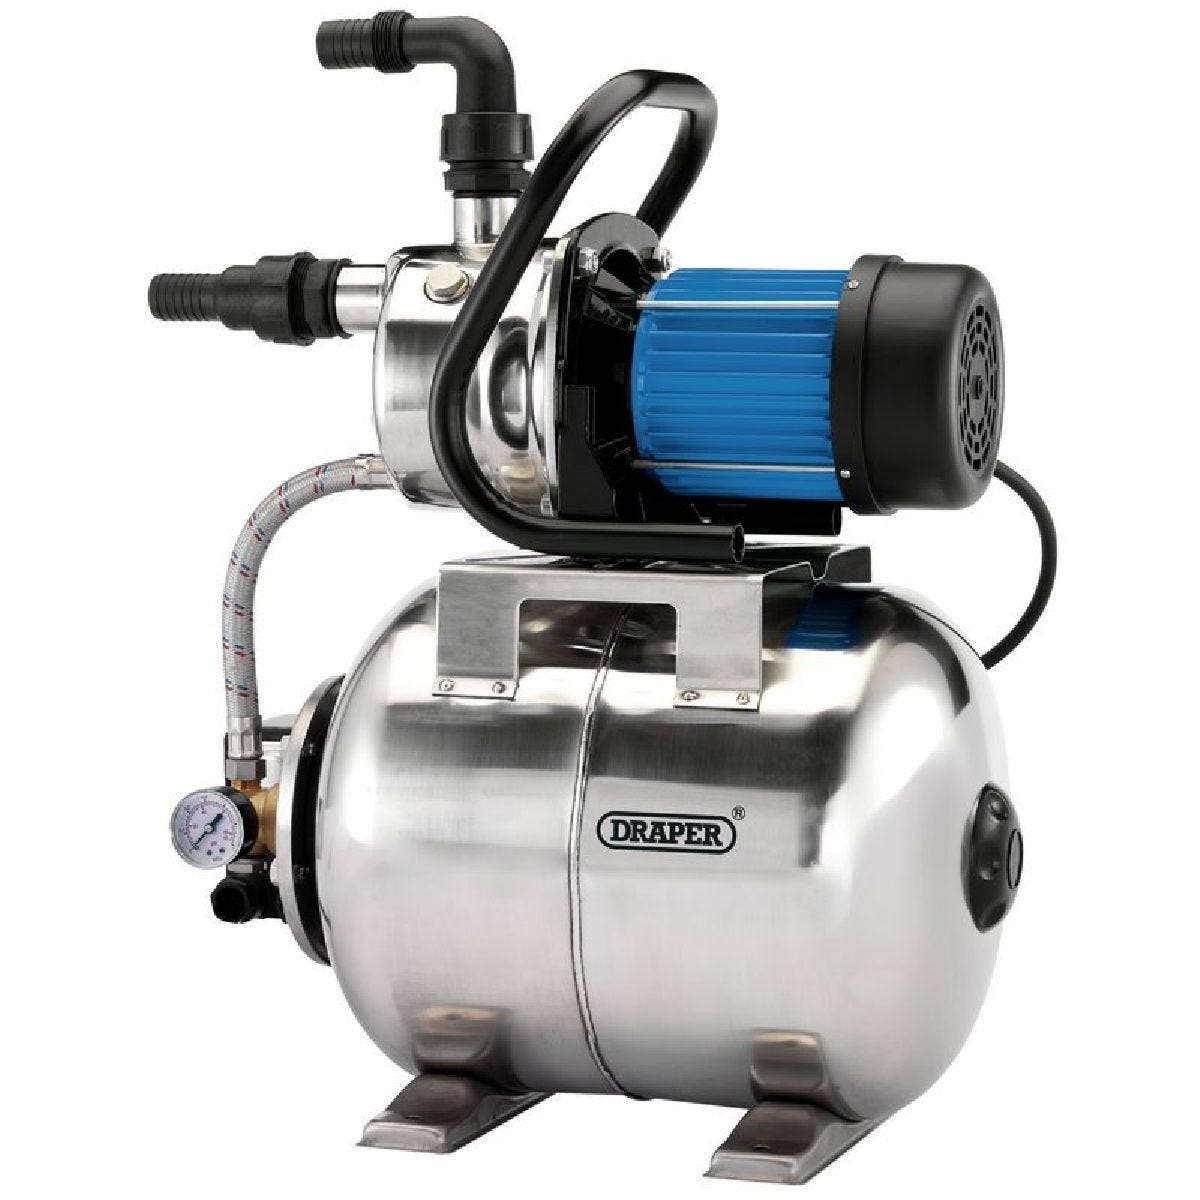 Draper Stainless Steel Booster Pump - 800W